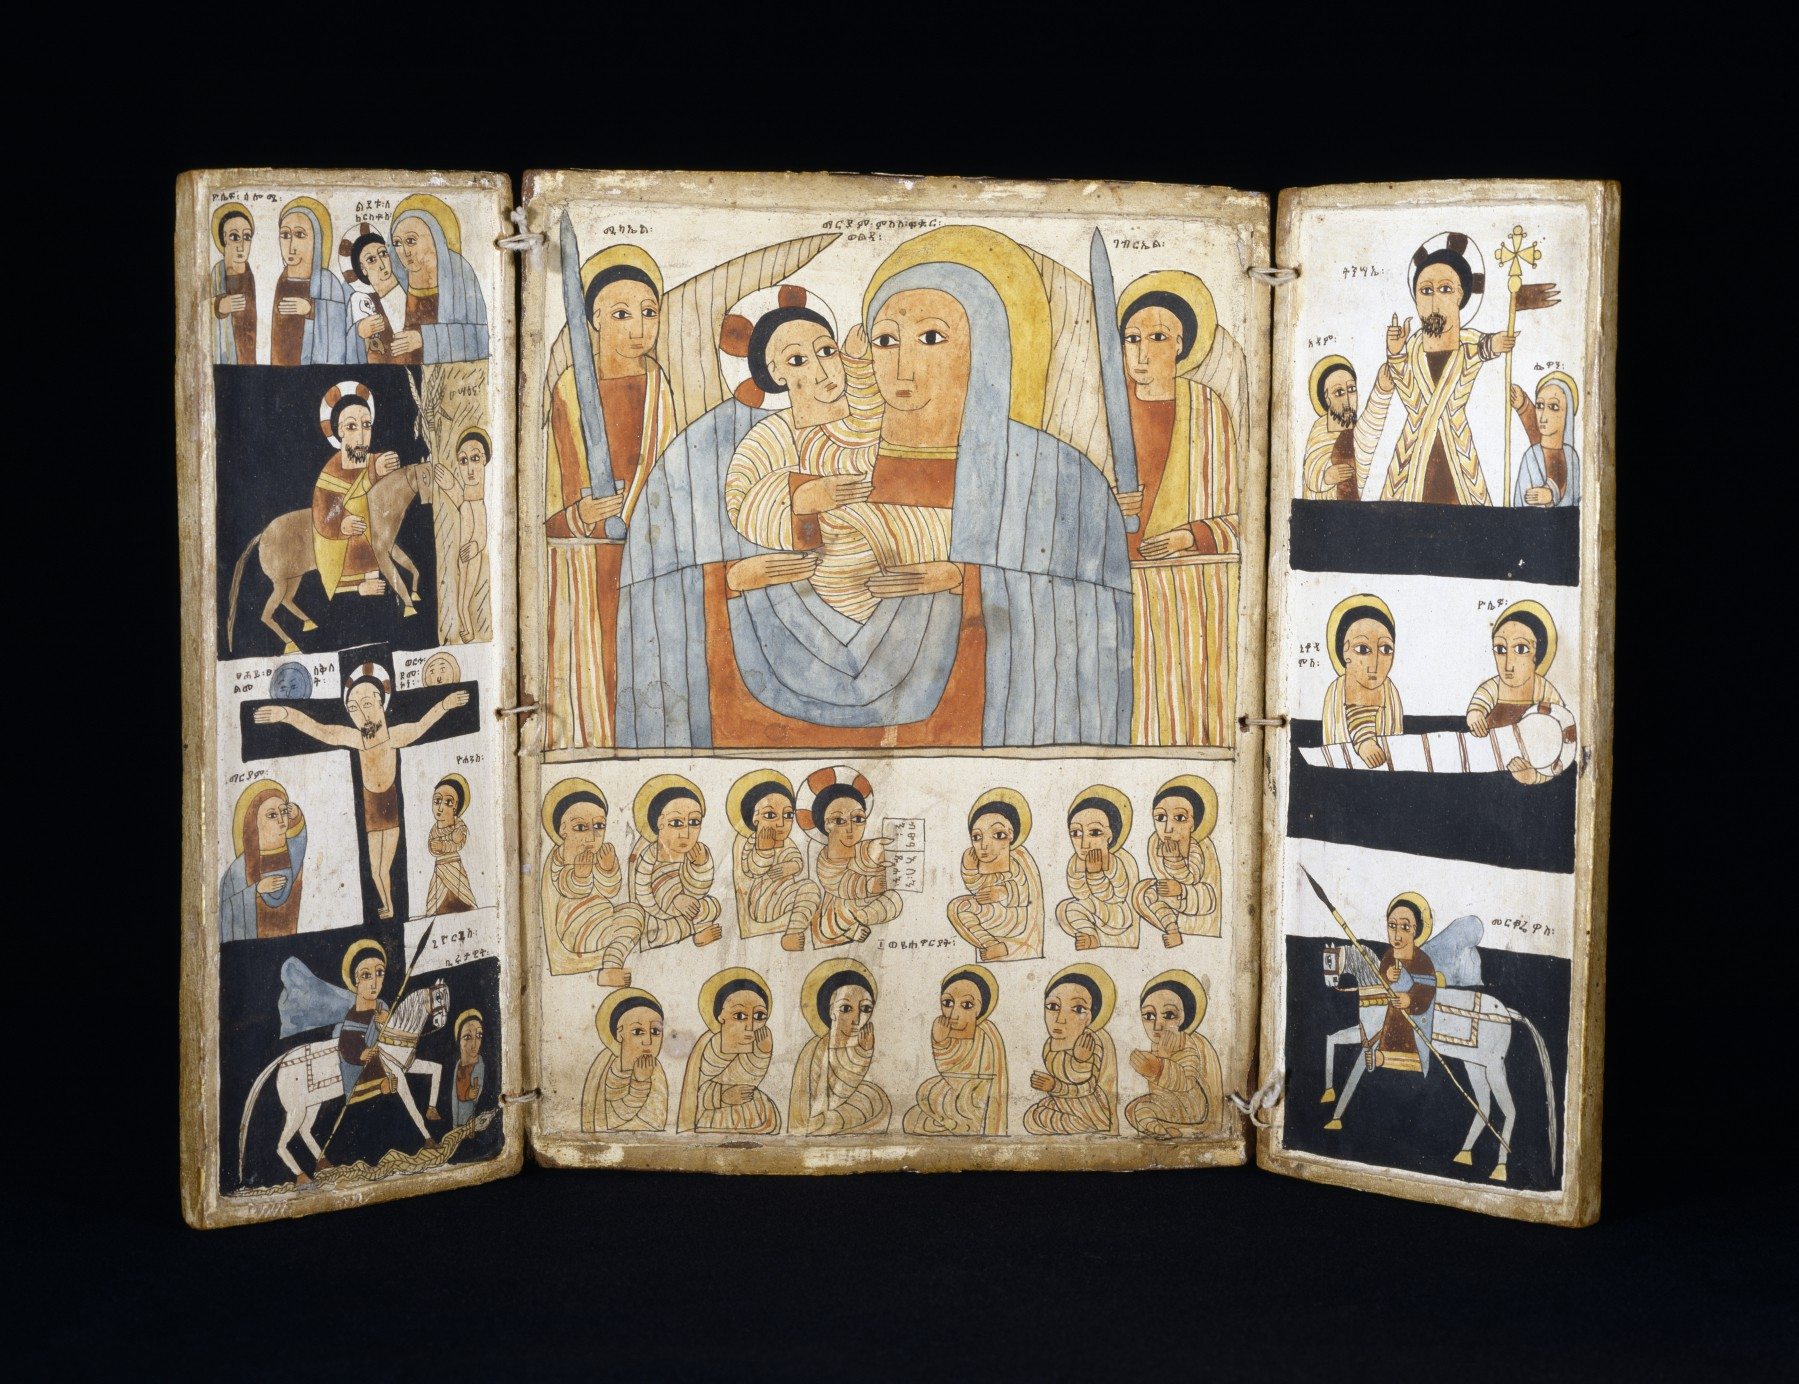 Triptych with Mary and Her Son, Archangels, Scenes from Life of Christ and Saints, early 16th century, Ethiopia